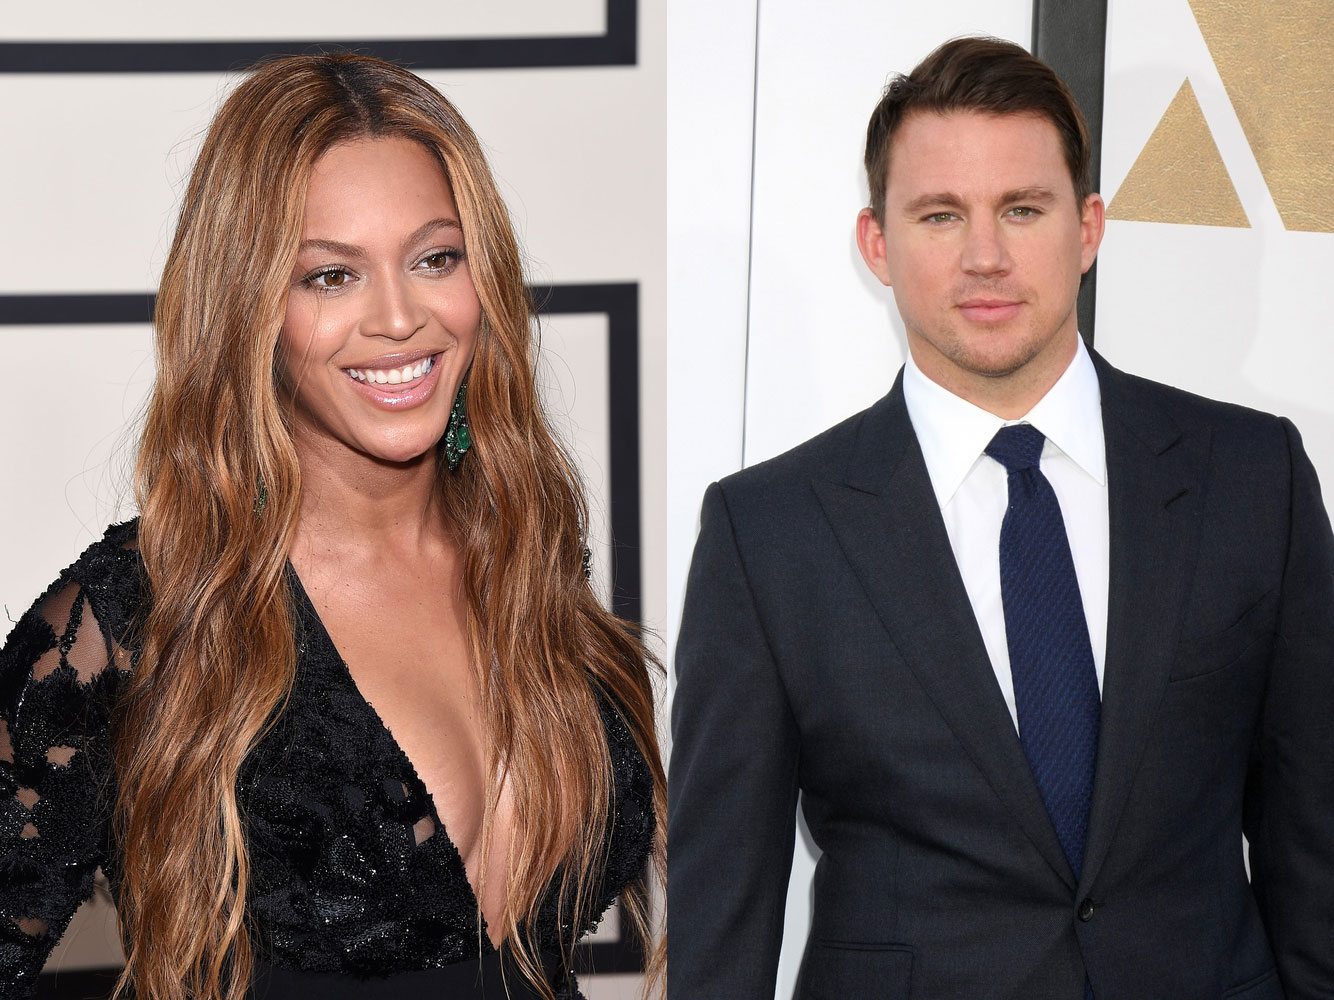 Get ready for the most epic Lip Sync Battle yet: Beyonce vs. Channing Tatum